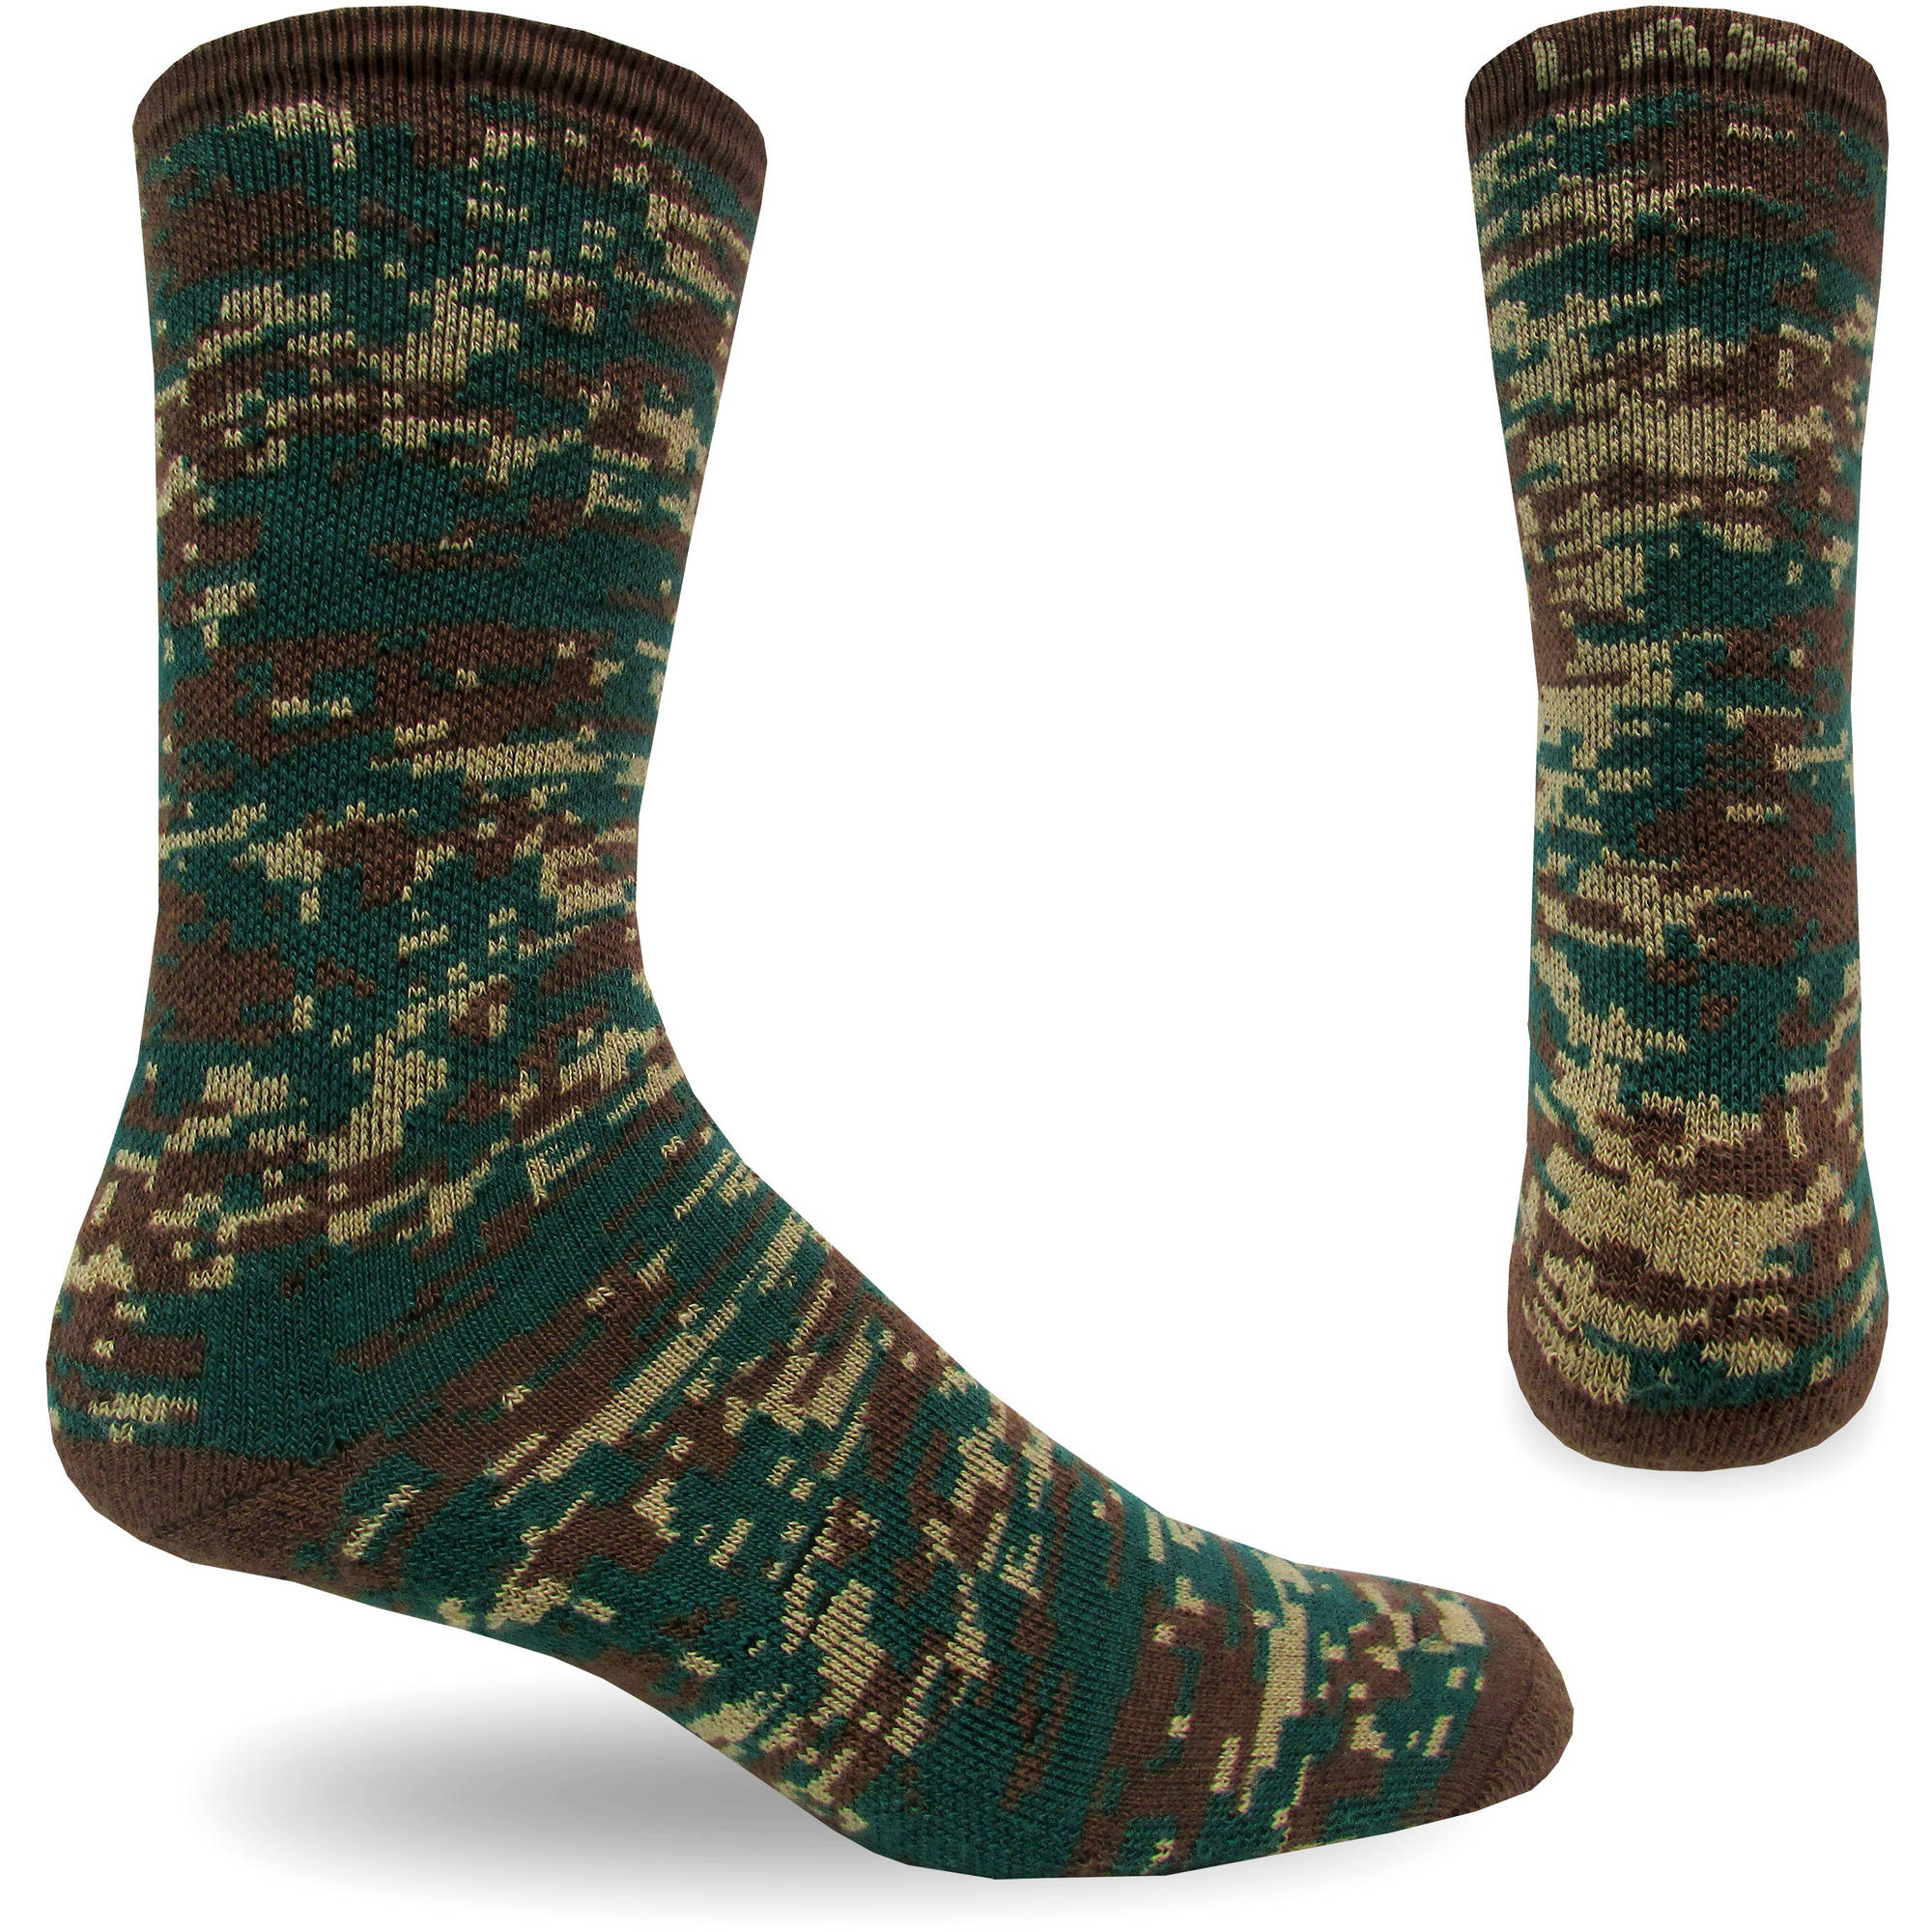 Topsox Digital Camo Lacrosse Sock, Half Cushion Performance with Arch Support